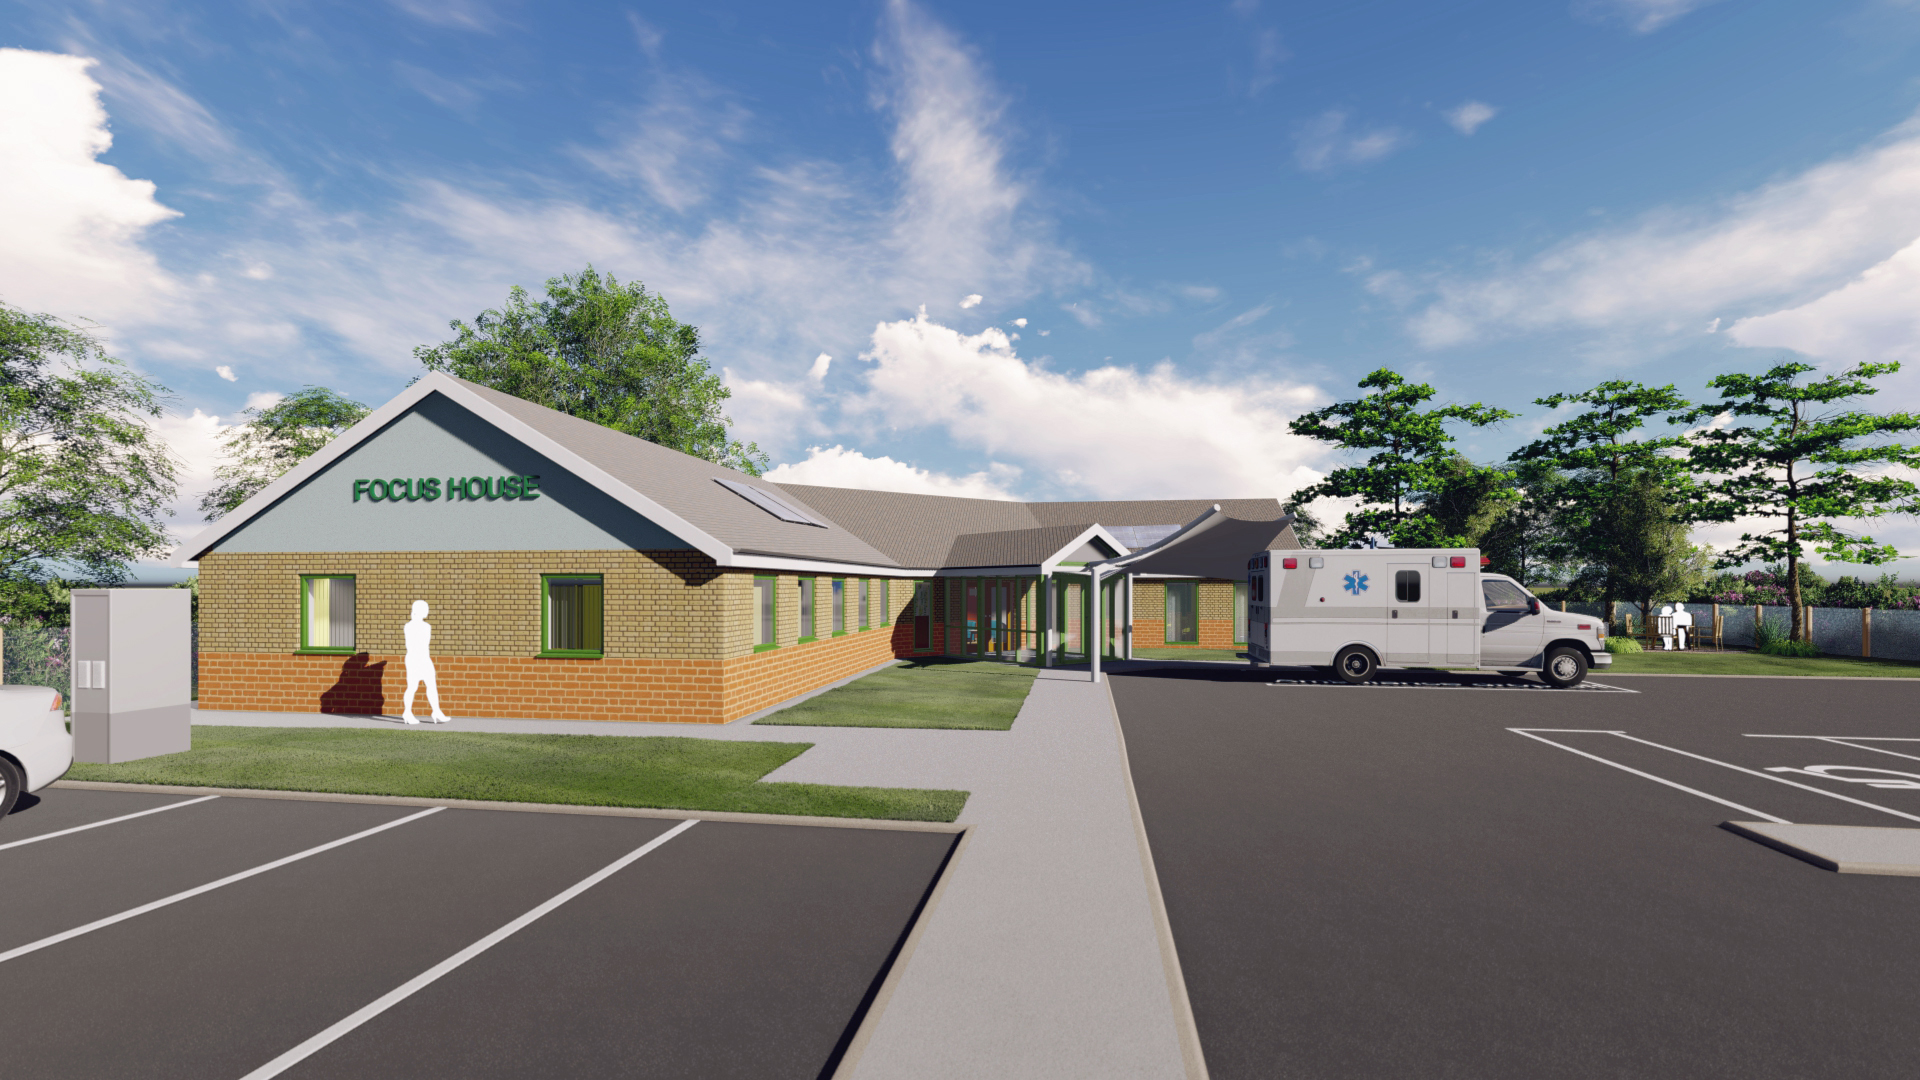 St Barnabas Hospice Wellbeing Centre